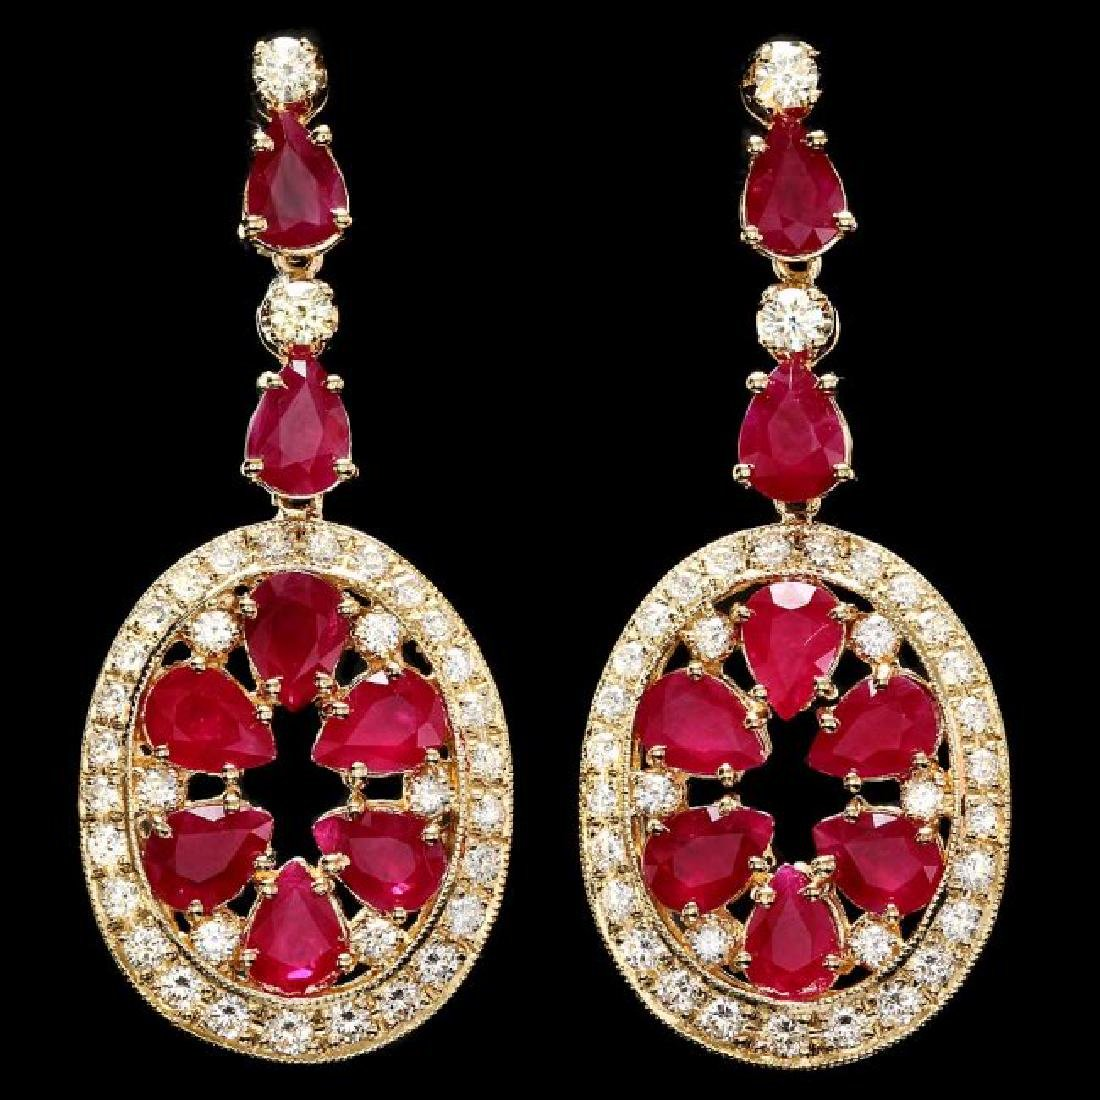 14k Gold 15.50ct Ruby 3.00ct Diamond Earrings